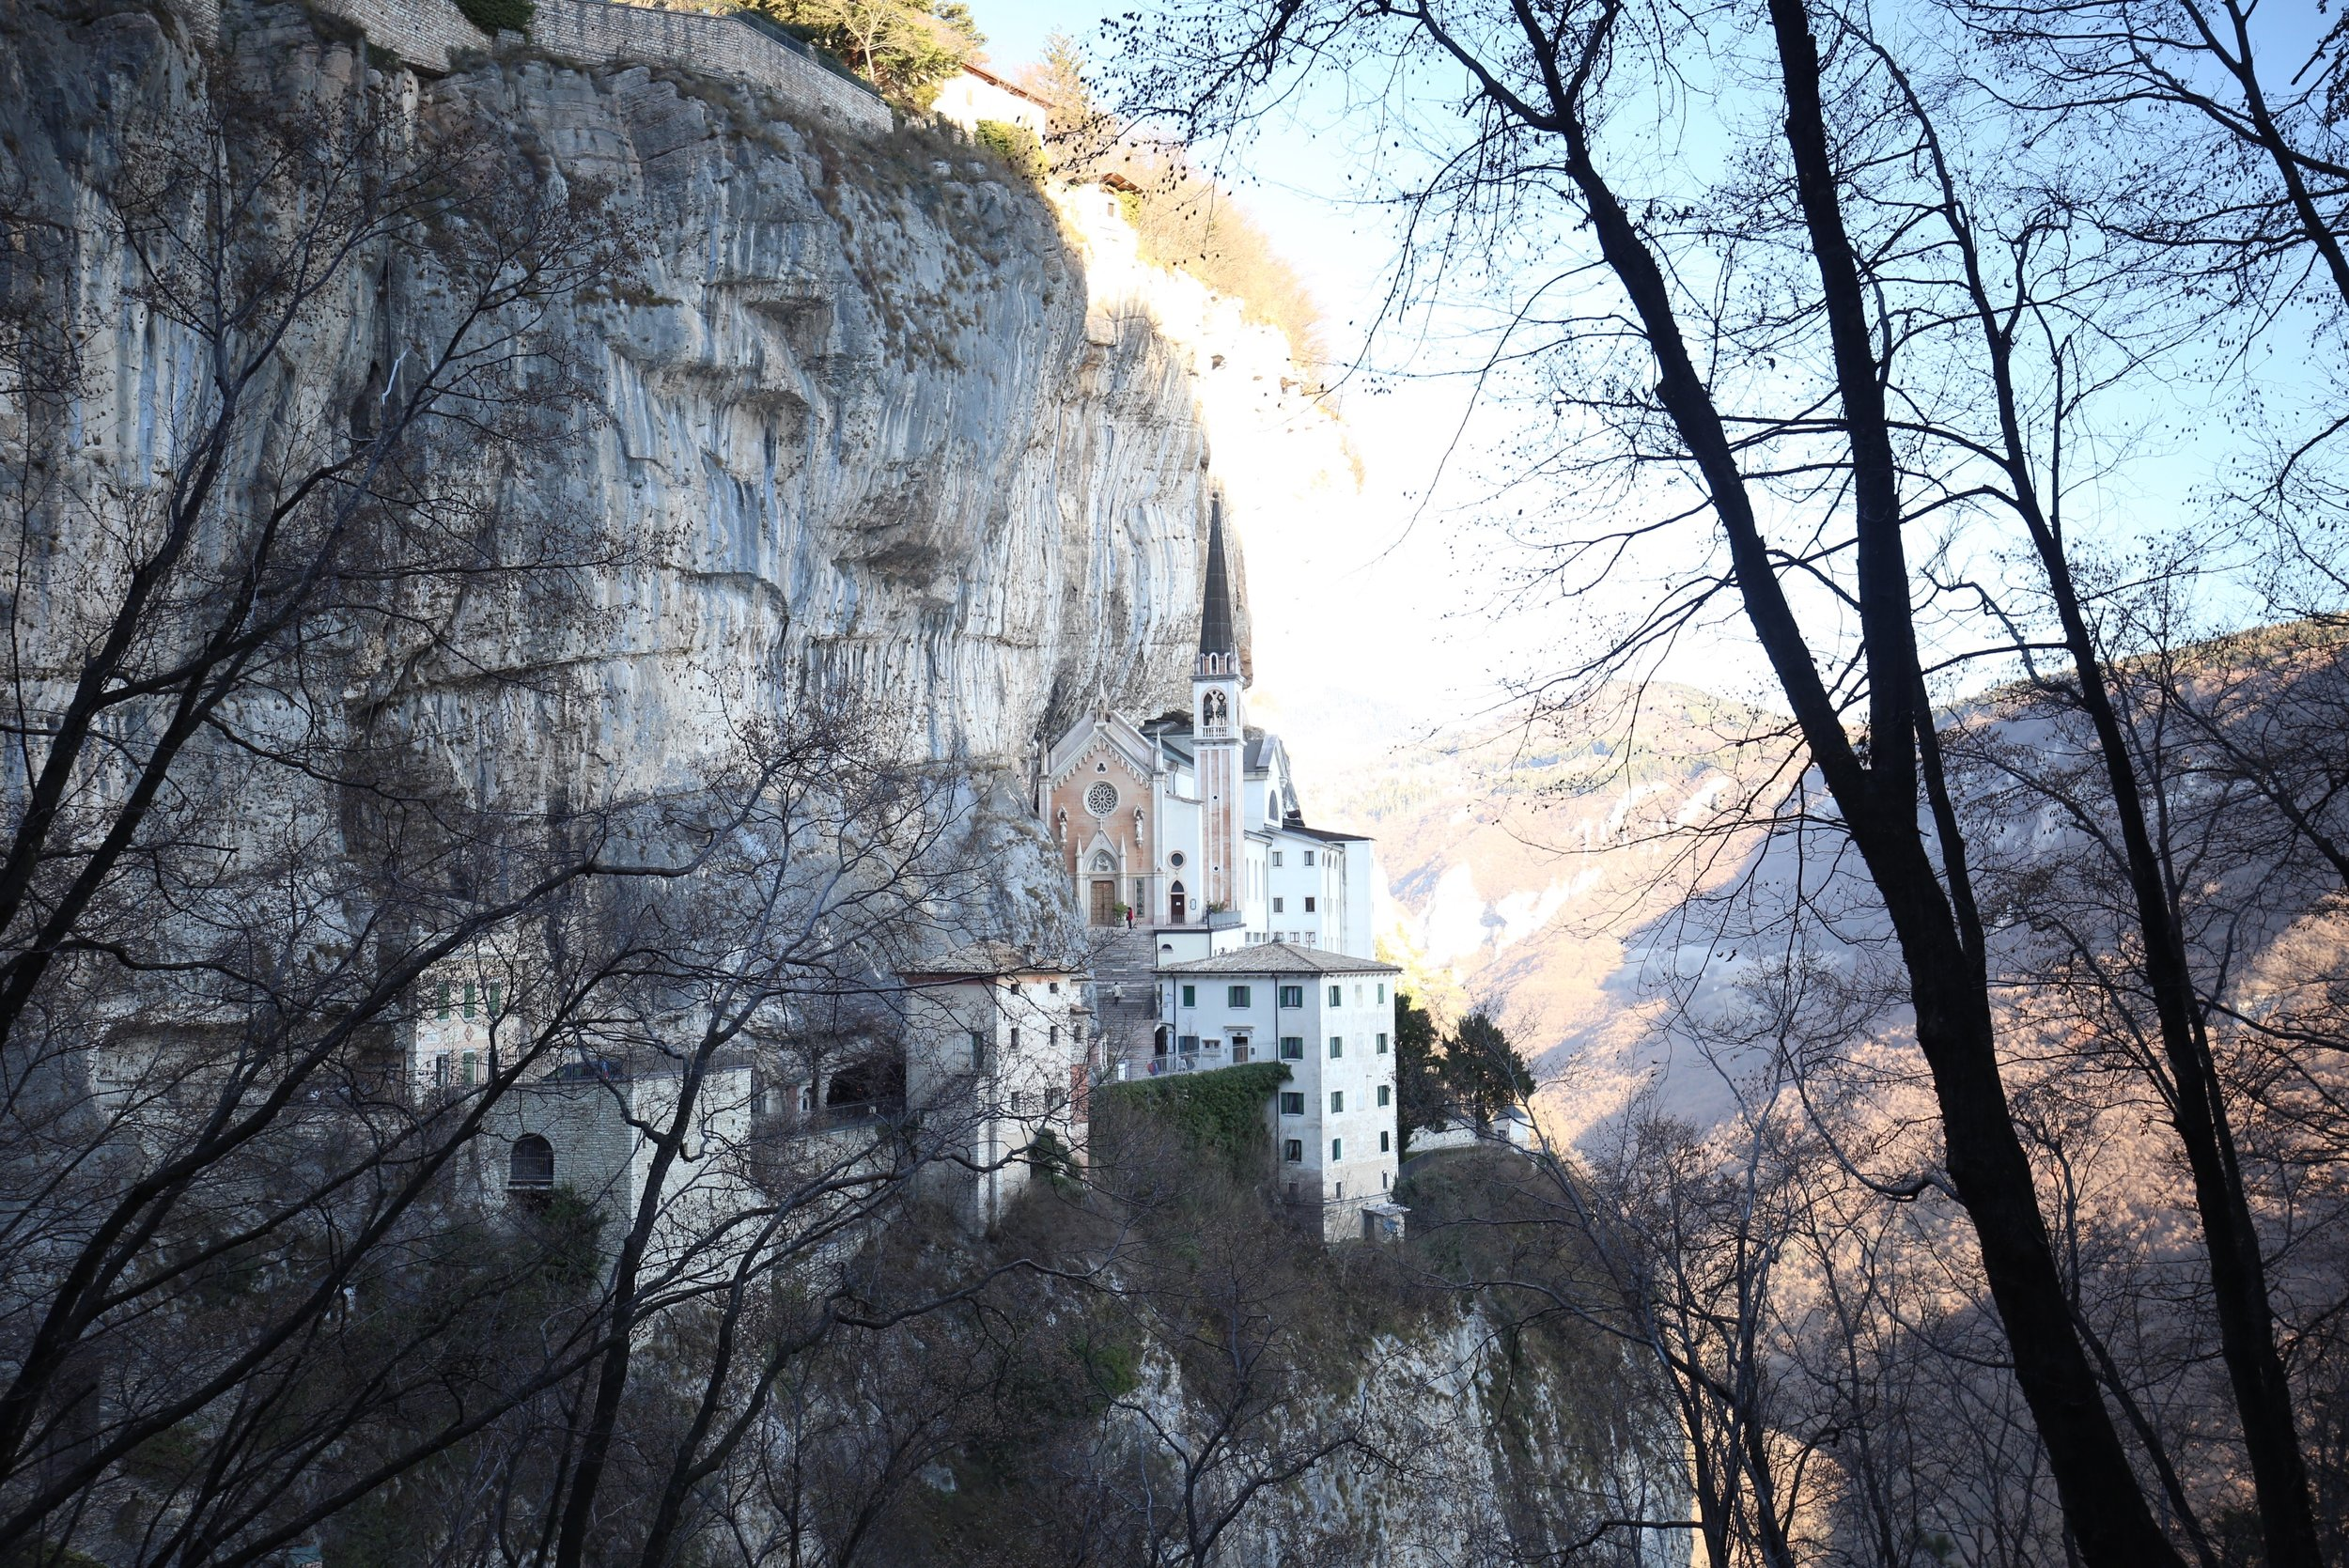 Madonna Della Corona, a pink church in the rock cliffs of Verona.